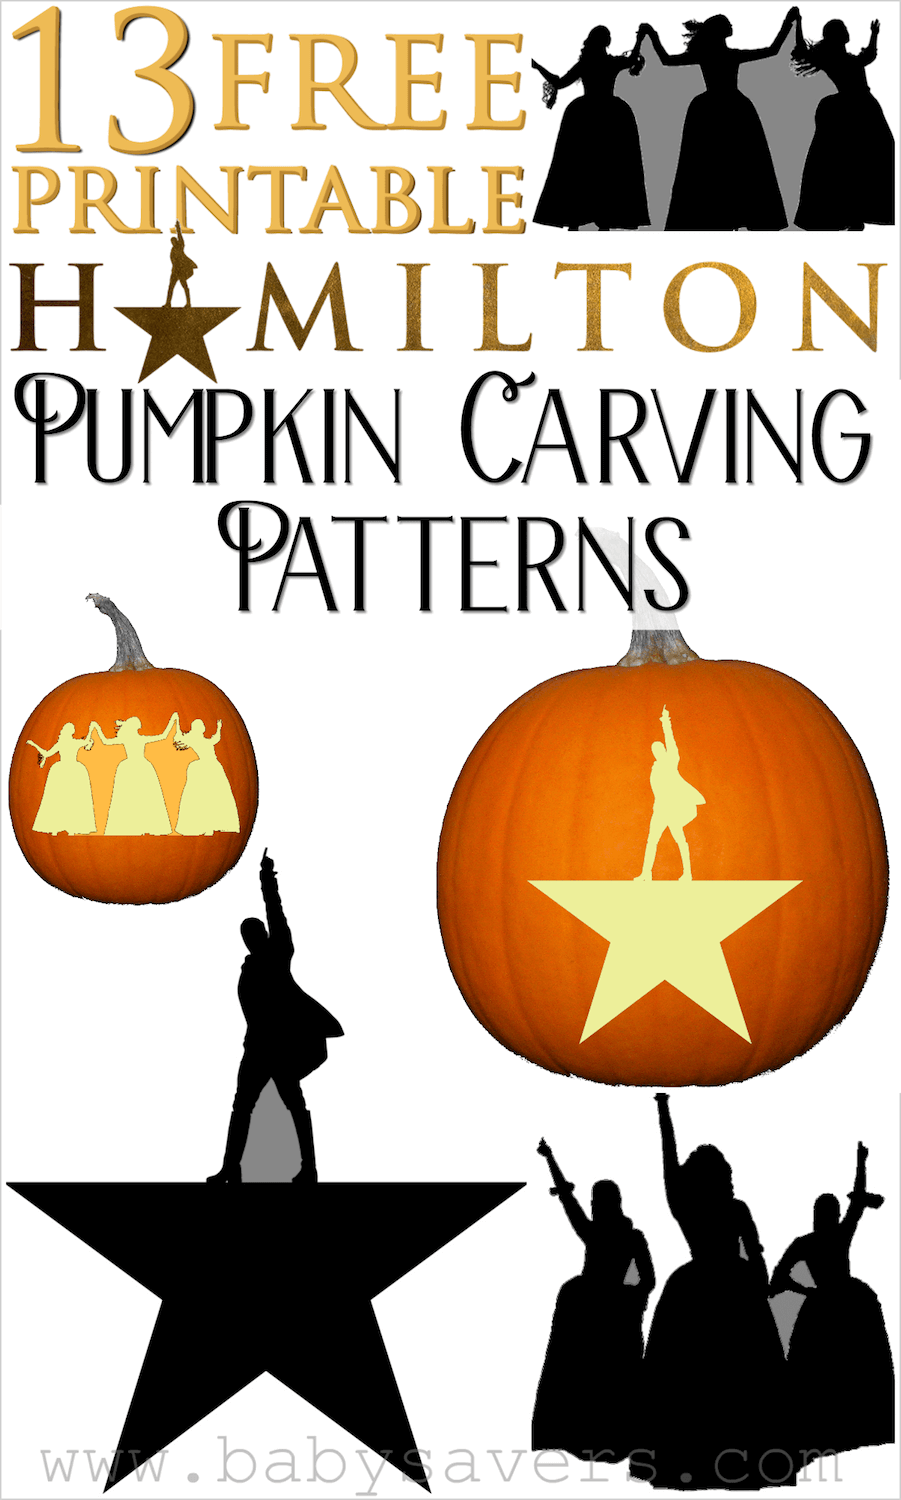 Hamilton pumpkin carving patterns